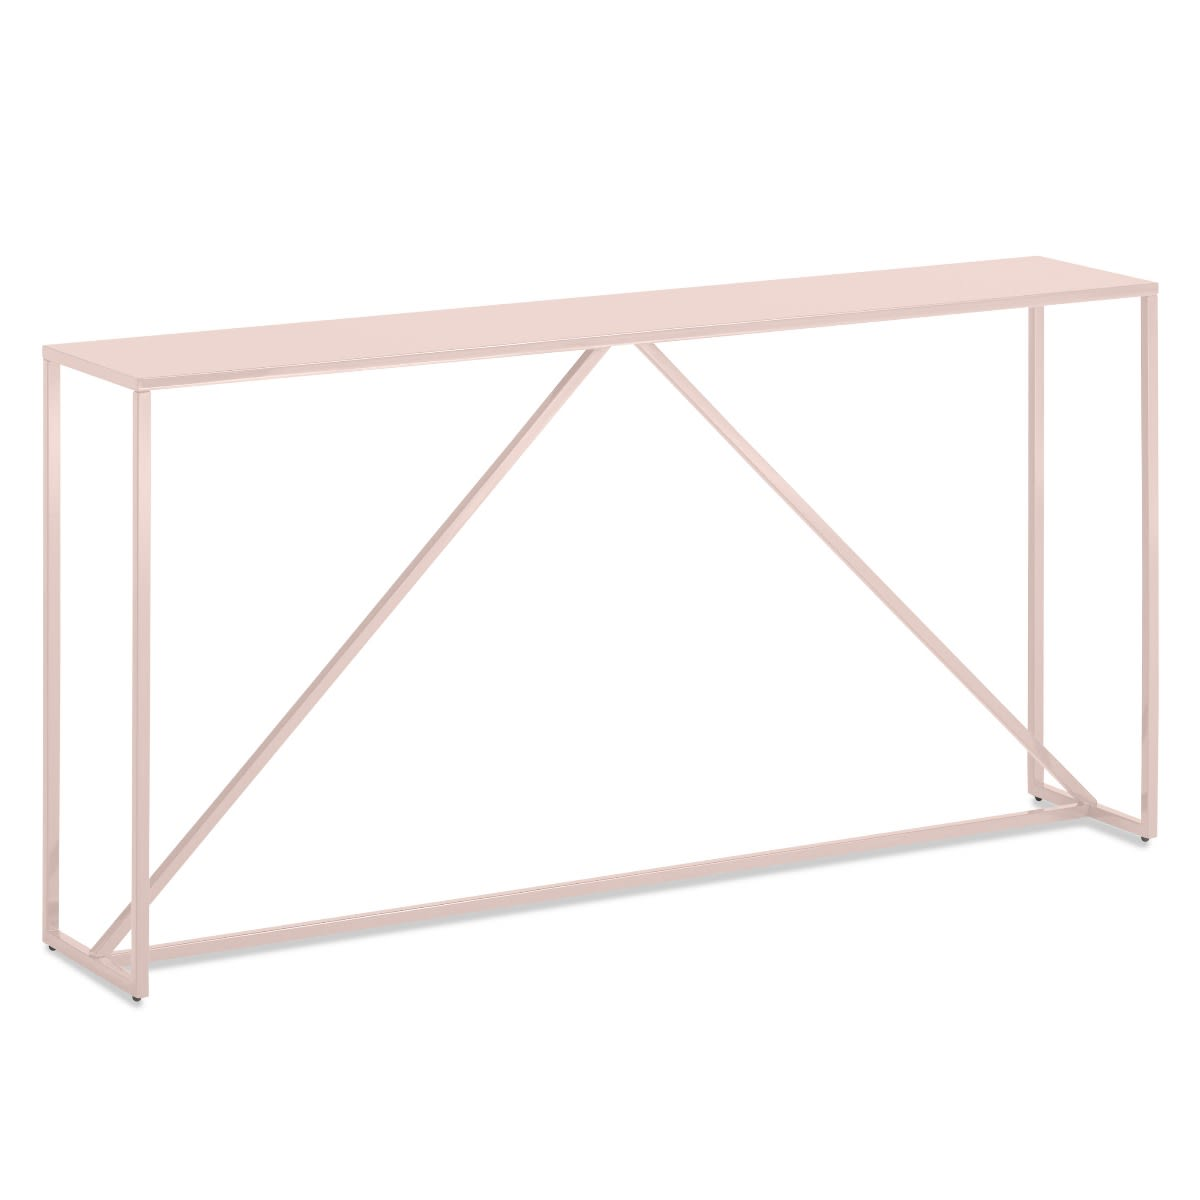 sr1_contbl_sw_34_high-strut-console-table-sweetness_1